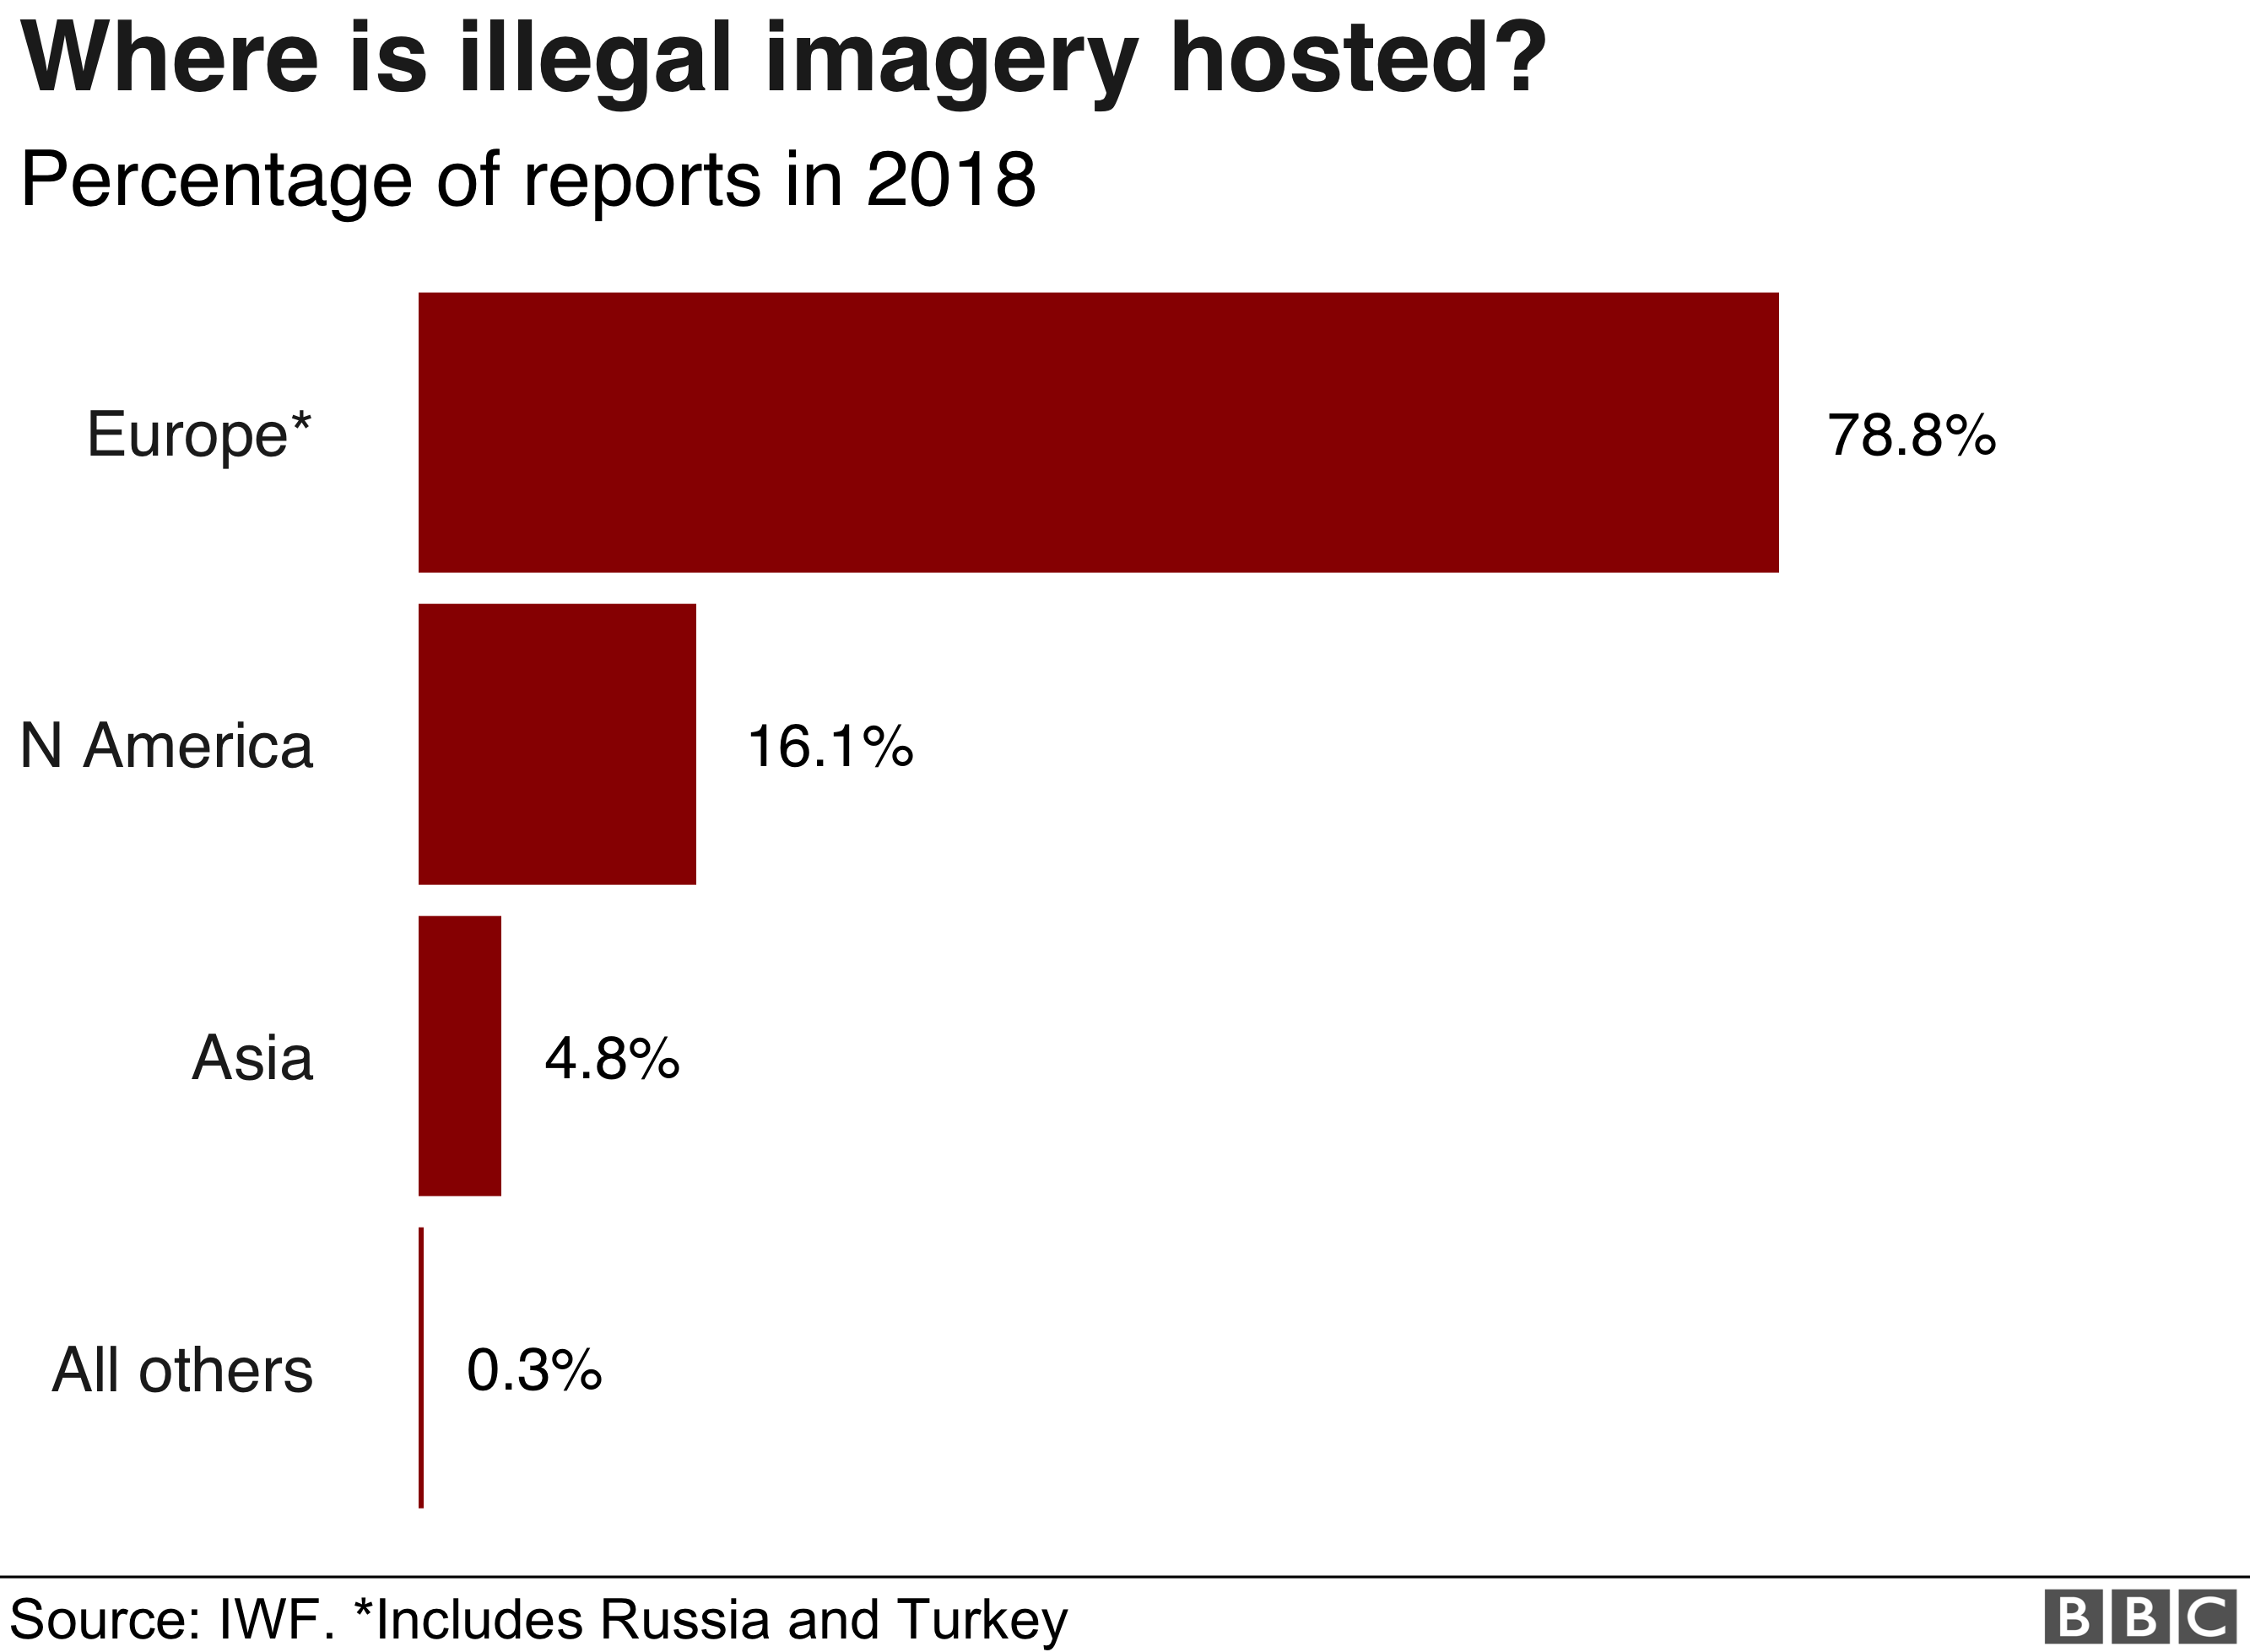 Where is illegal imagery hosted? More than 78% is in Europe.